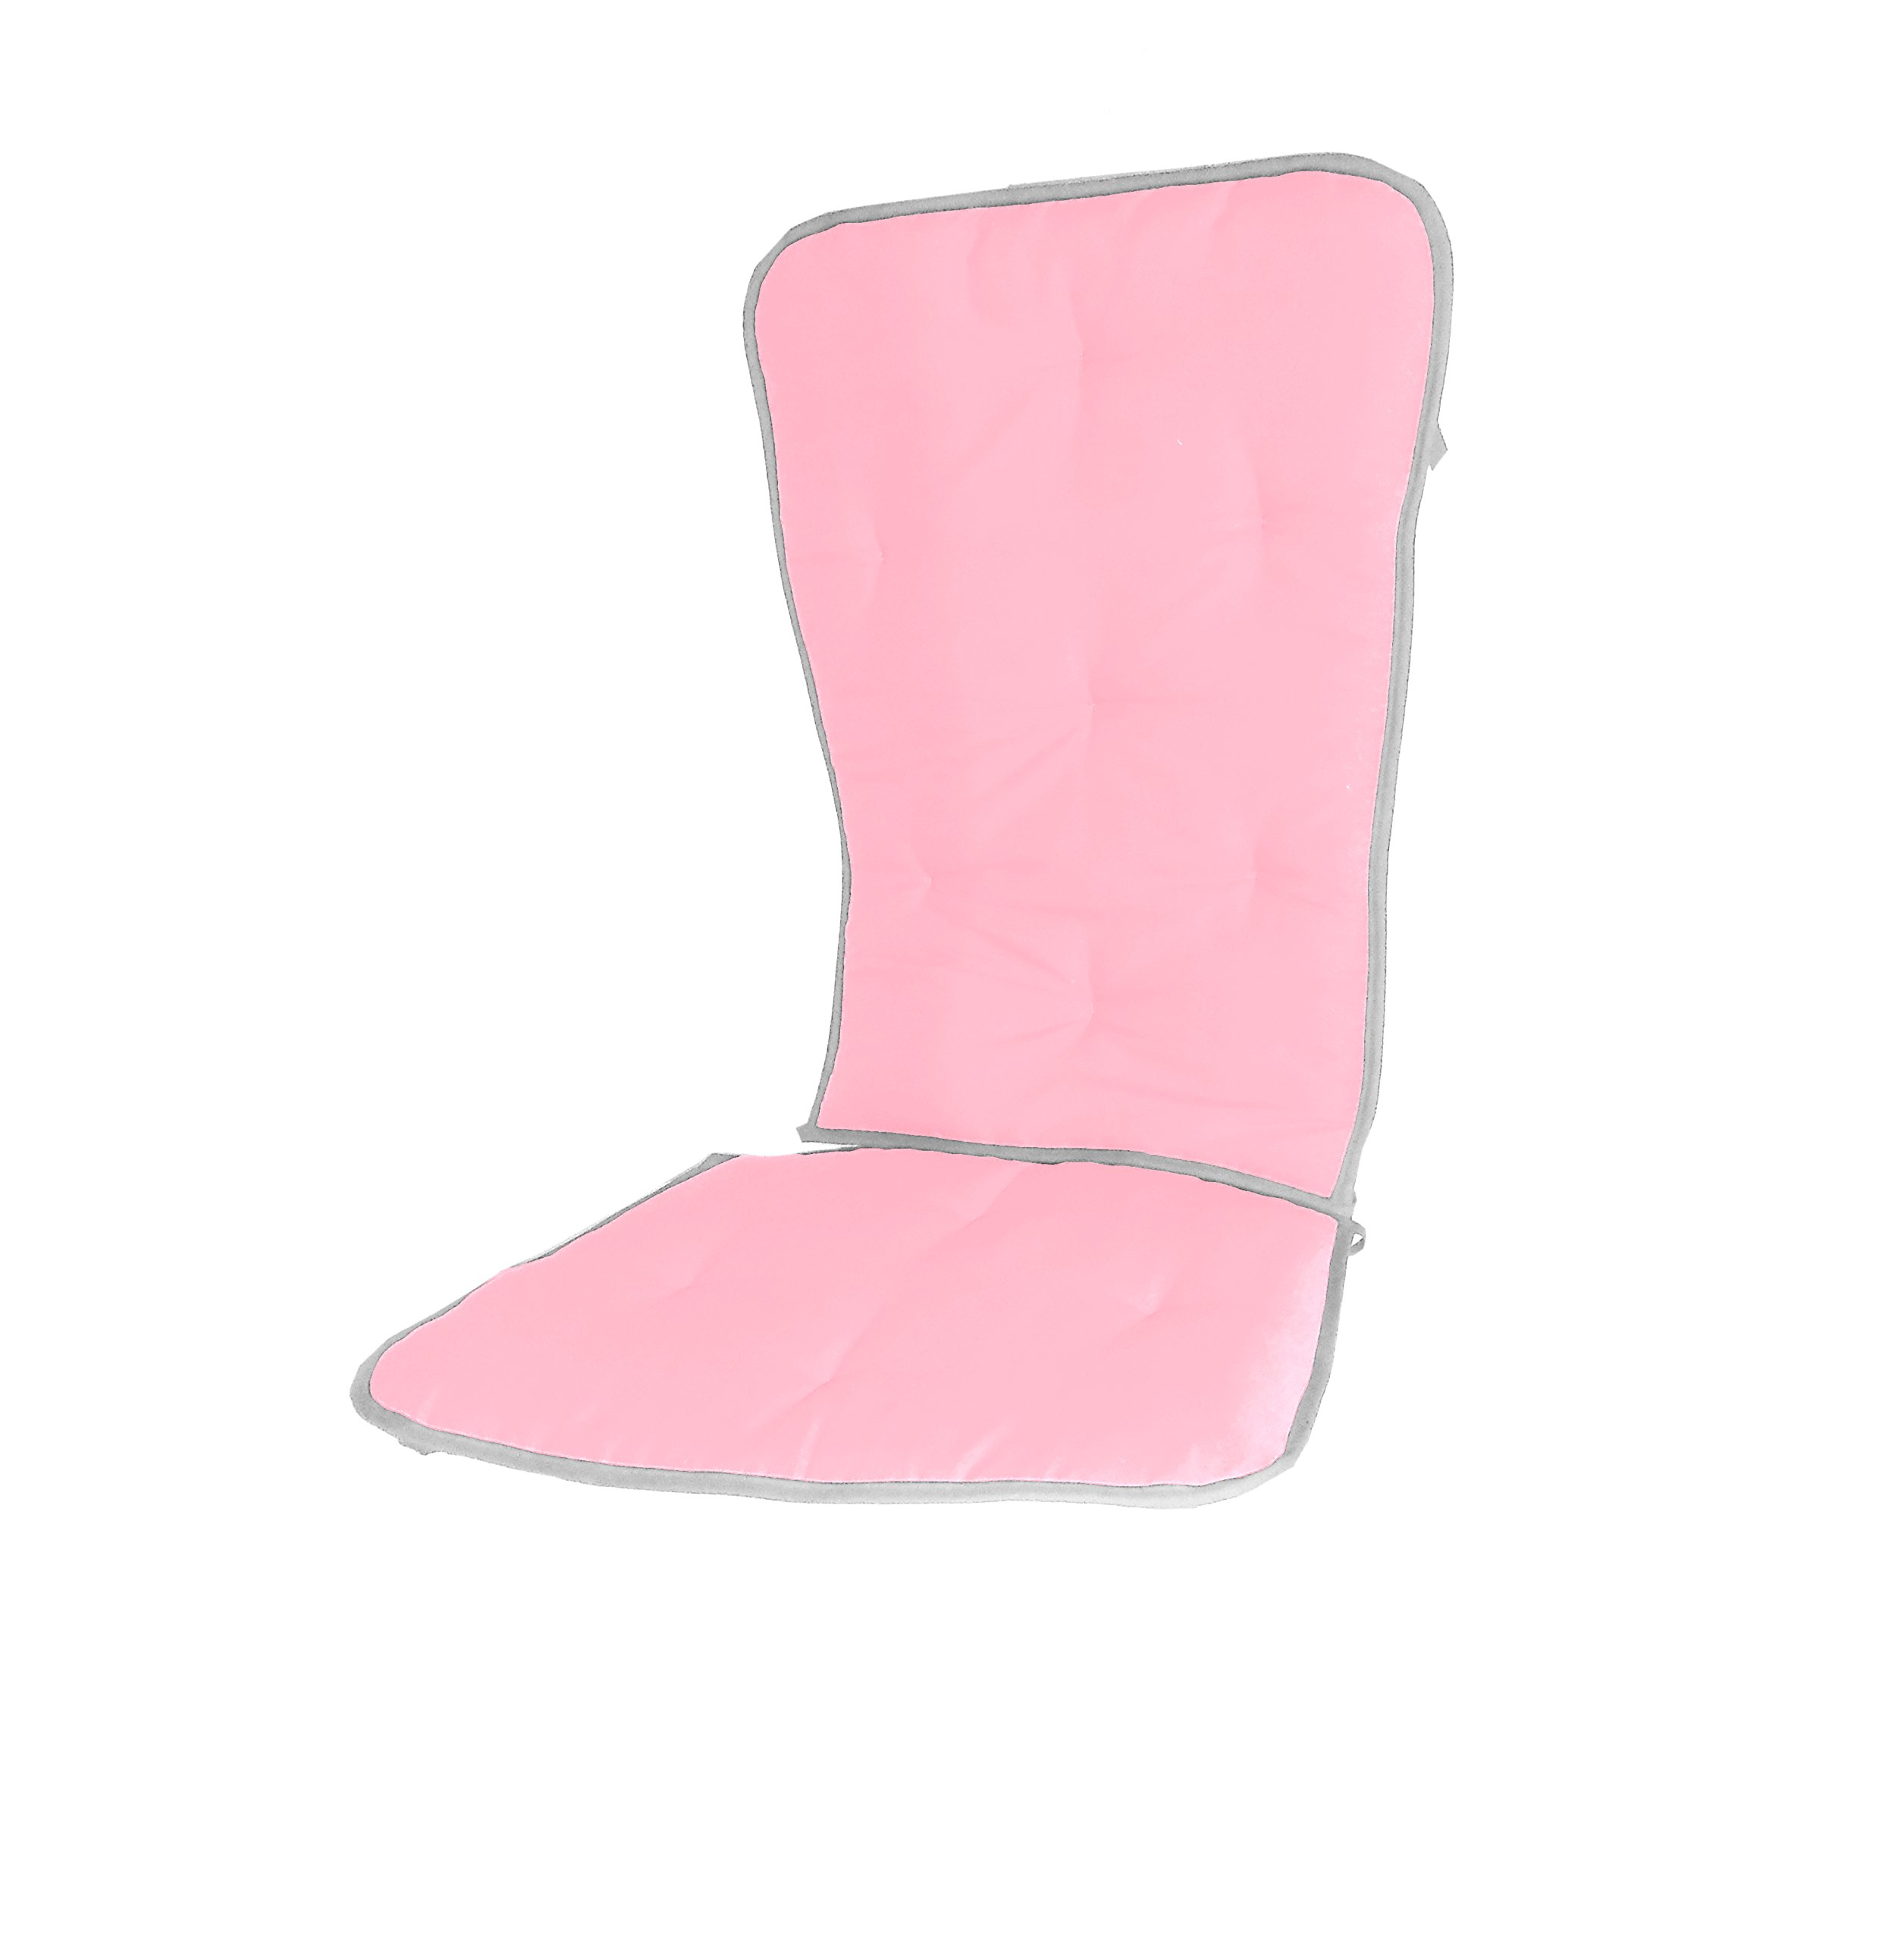 Baby Doll Bedding Reversible Rocking Chair Pad, Hot Pink/Grey by BabyDoll Bedding